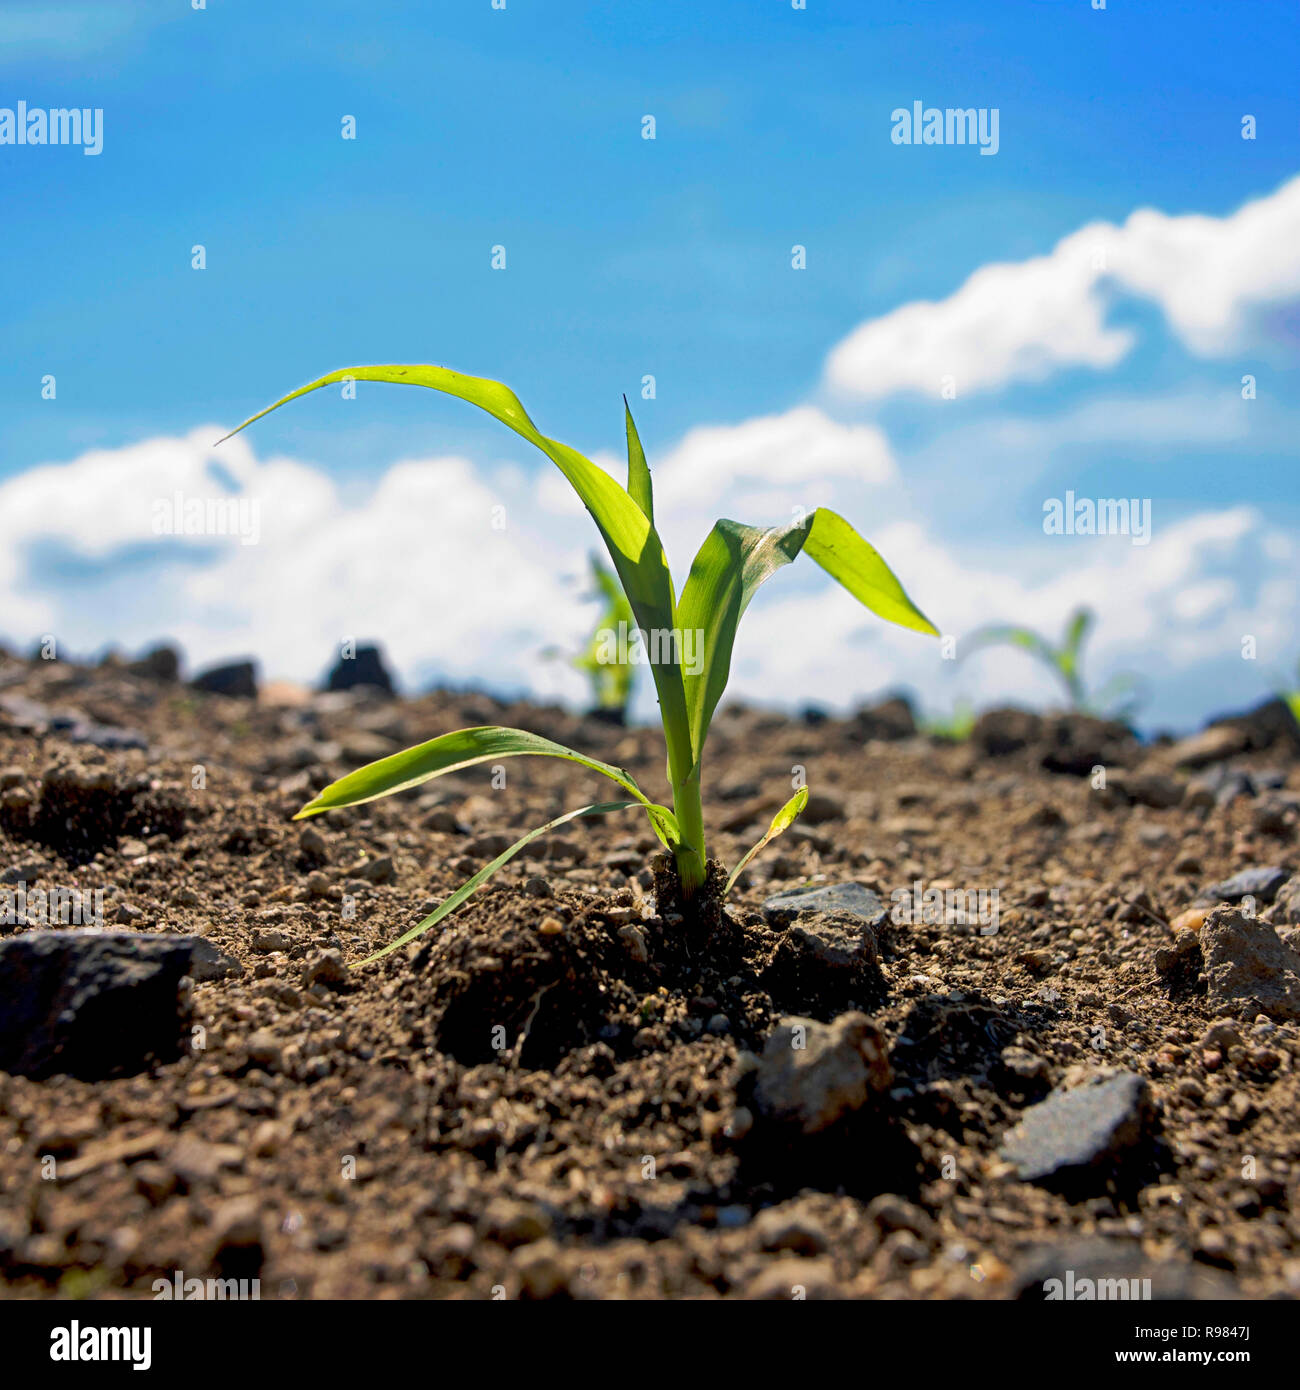 Corn seedling, Auvergne Rhone Alpes, france - Stock Image